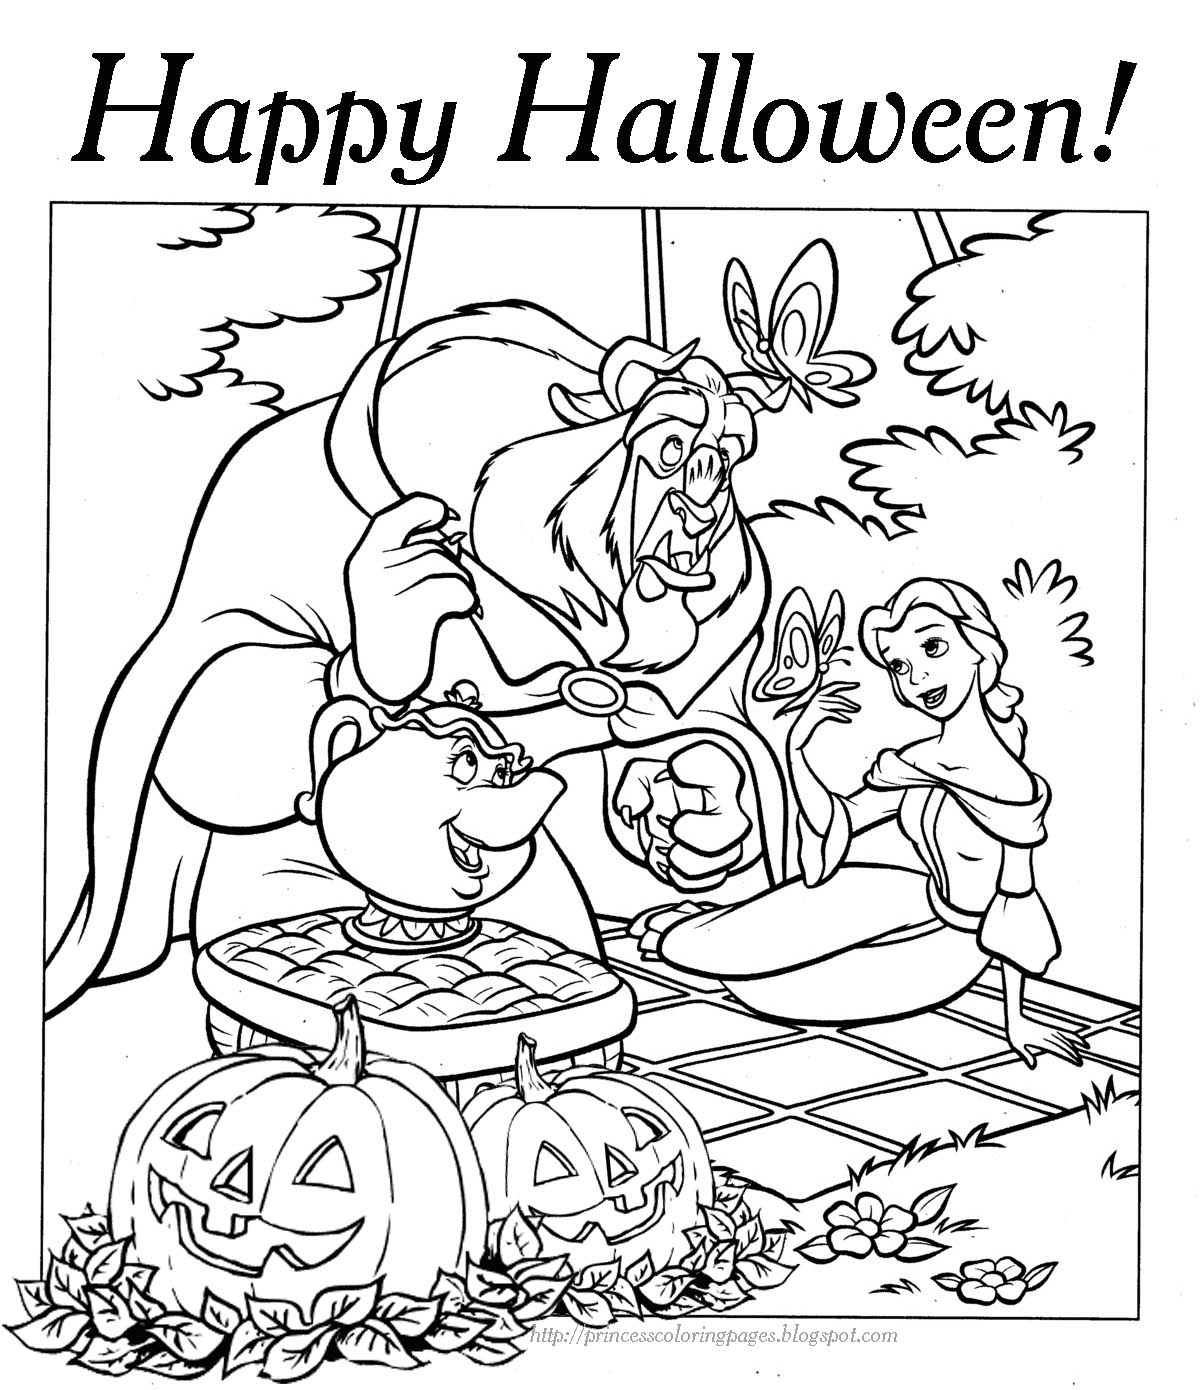 Beauty and The Beast Halloween Coloring Pages - Print Color Craft